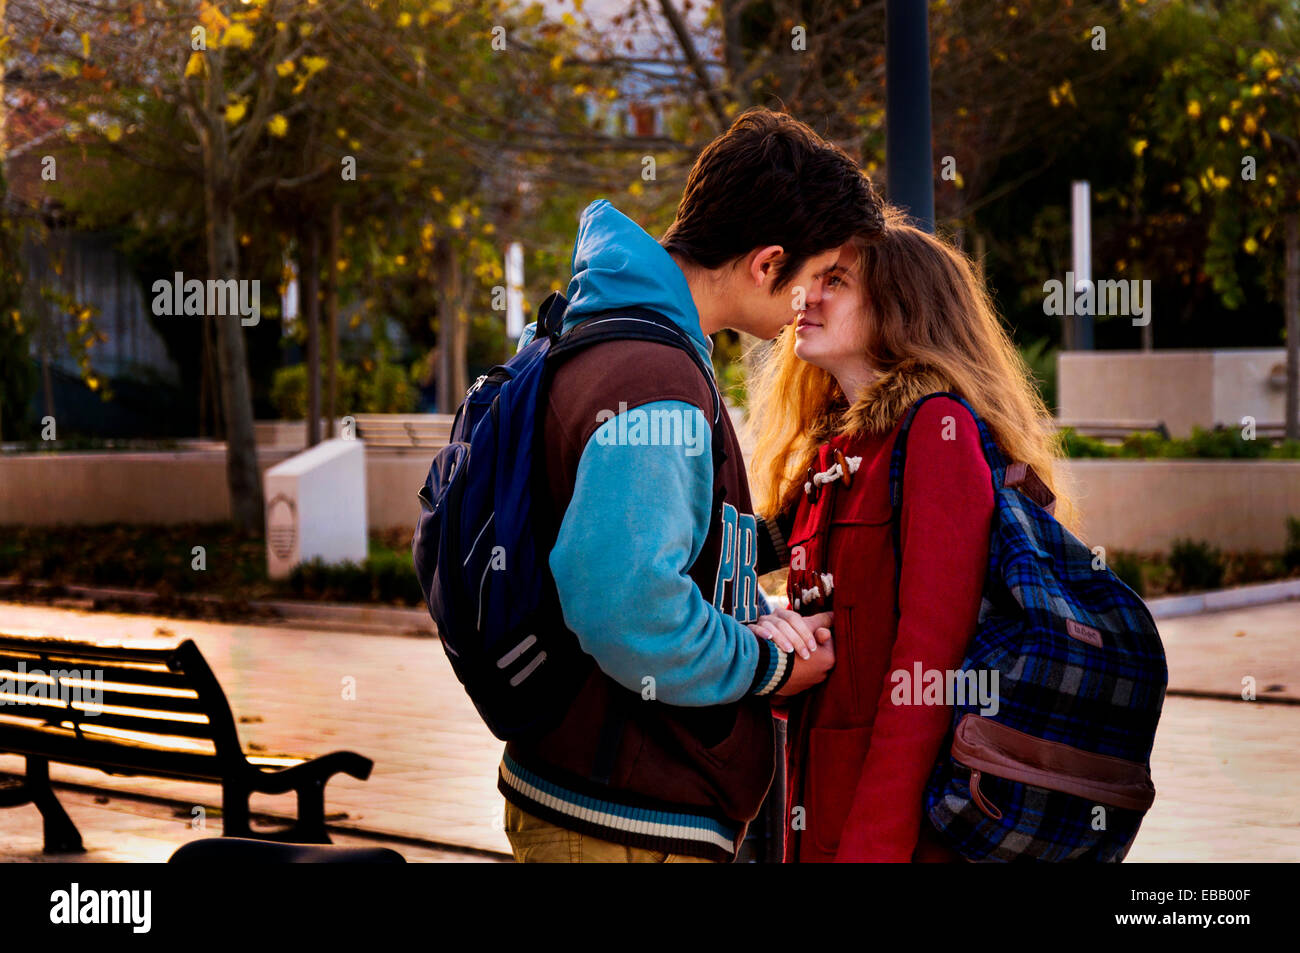 Lovers in Mostar, Bosnia and Herzegovina - Stock Image